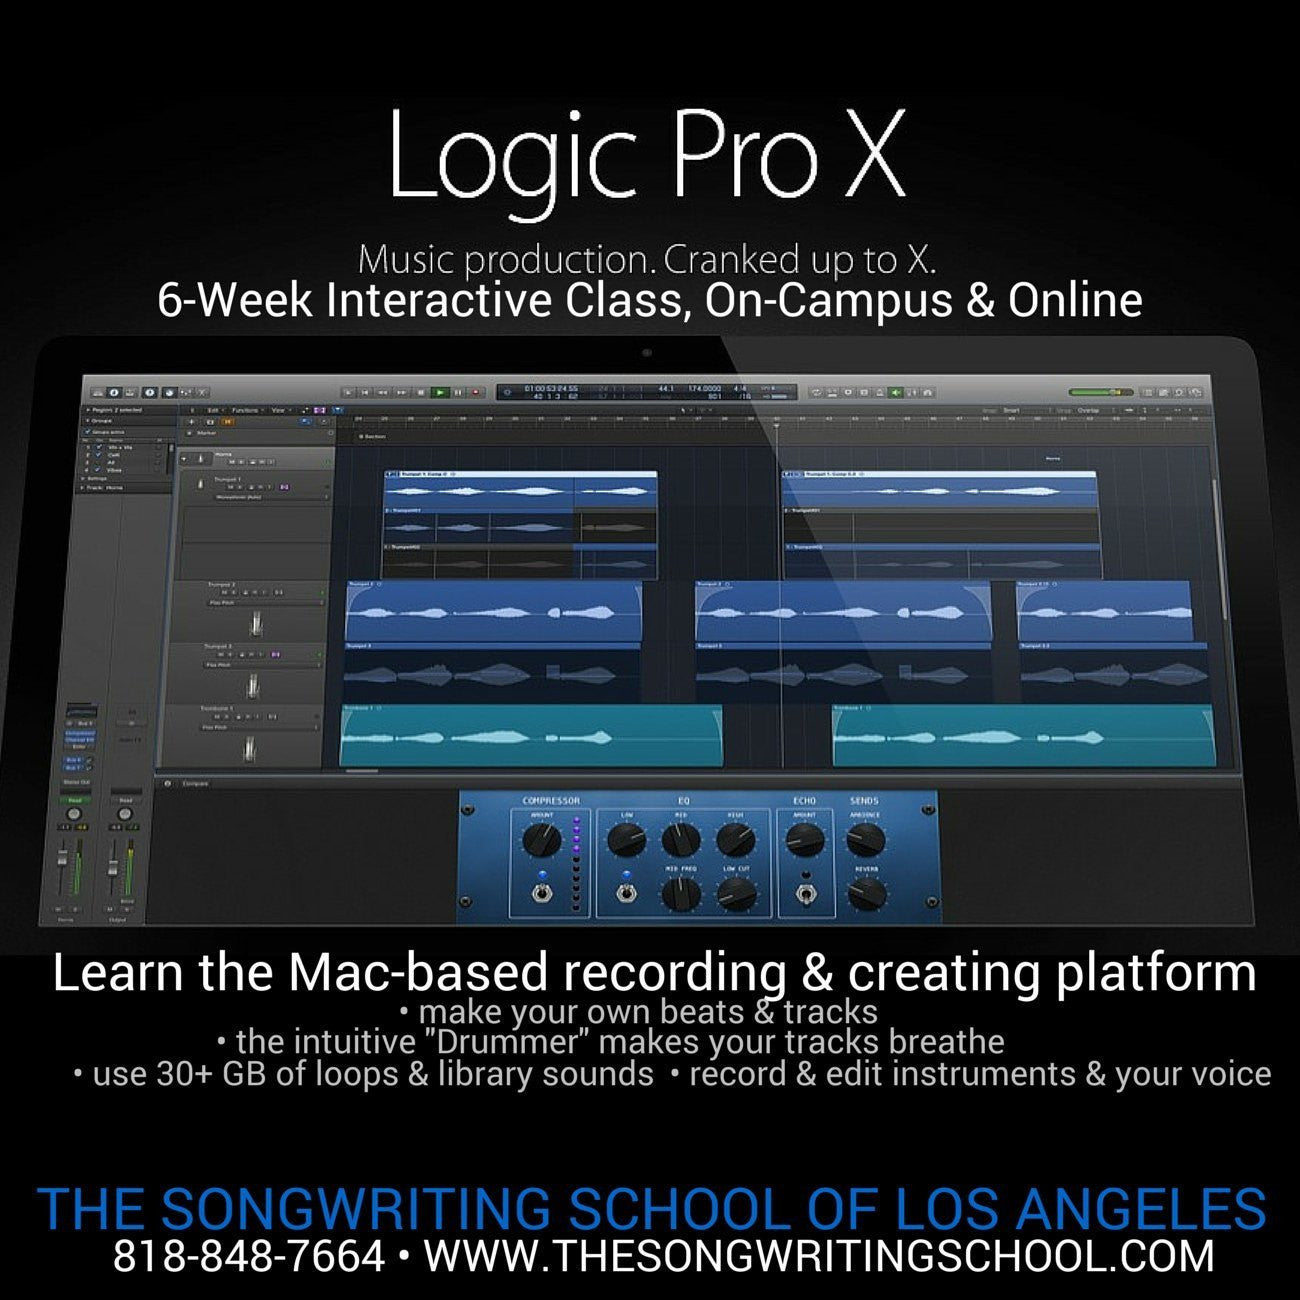 Production & Recording - The Songwriting School of Los Angeles